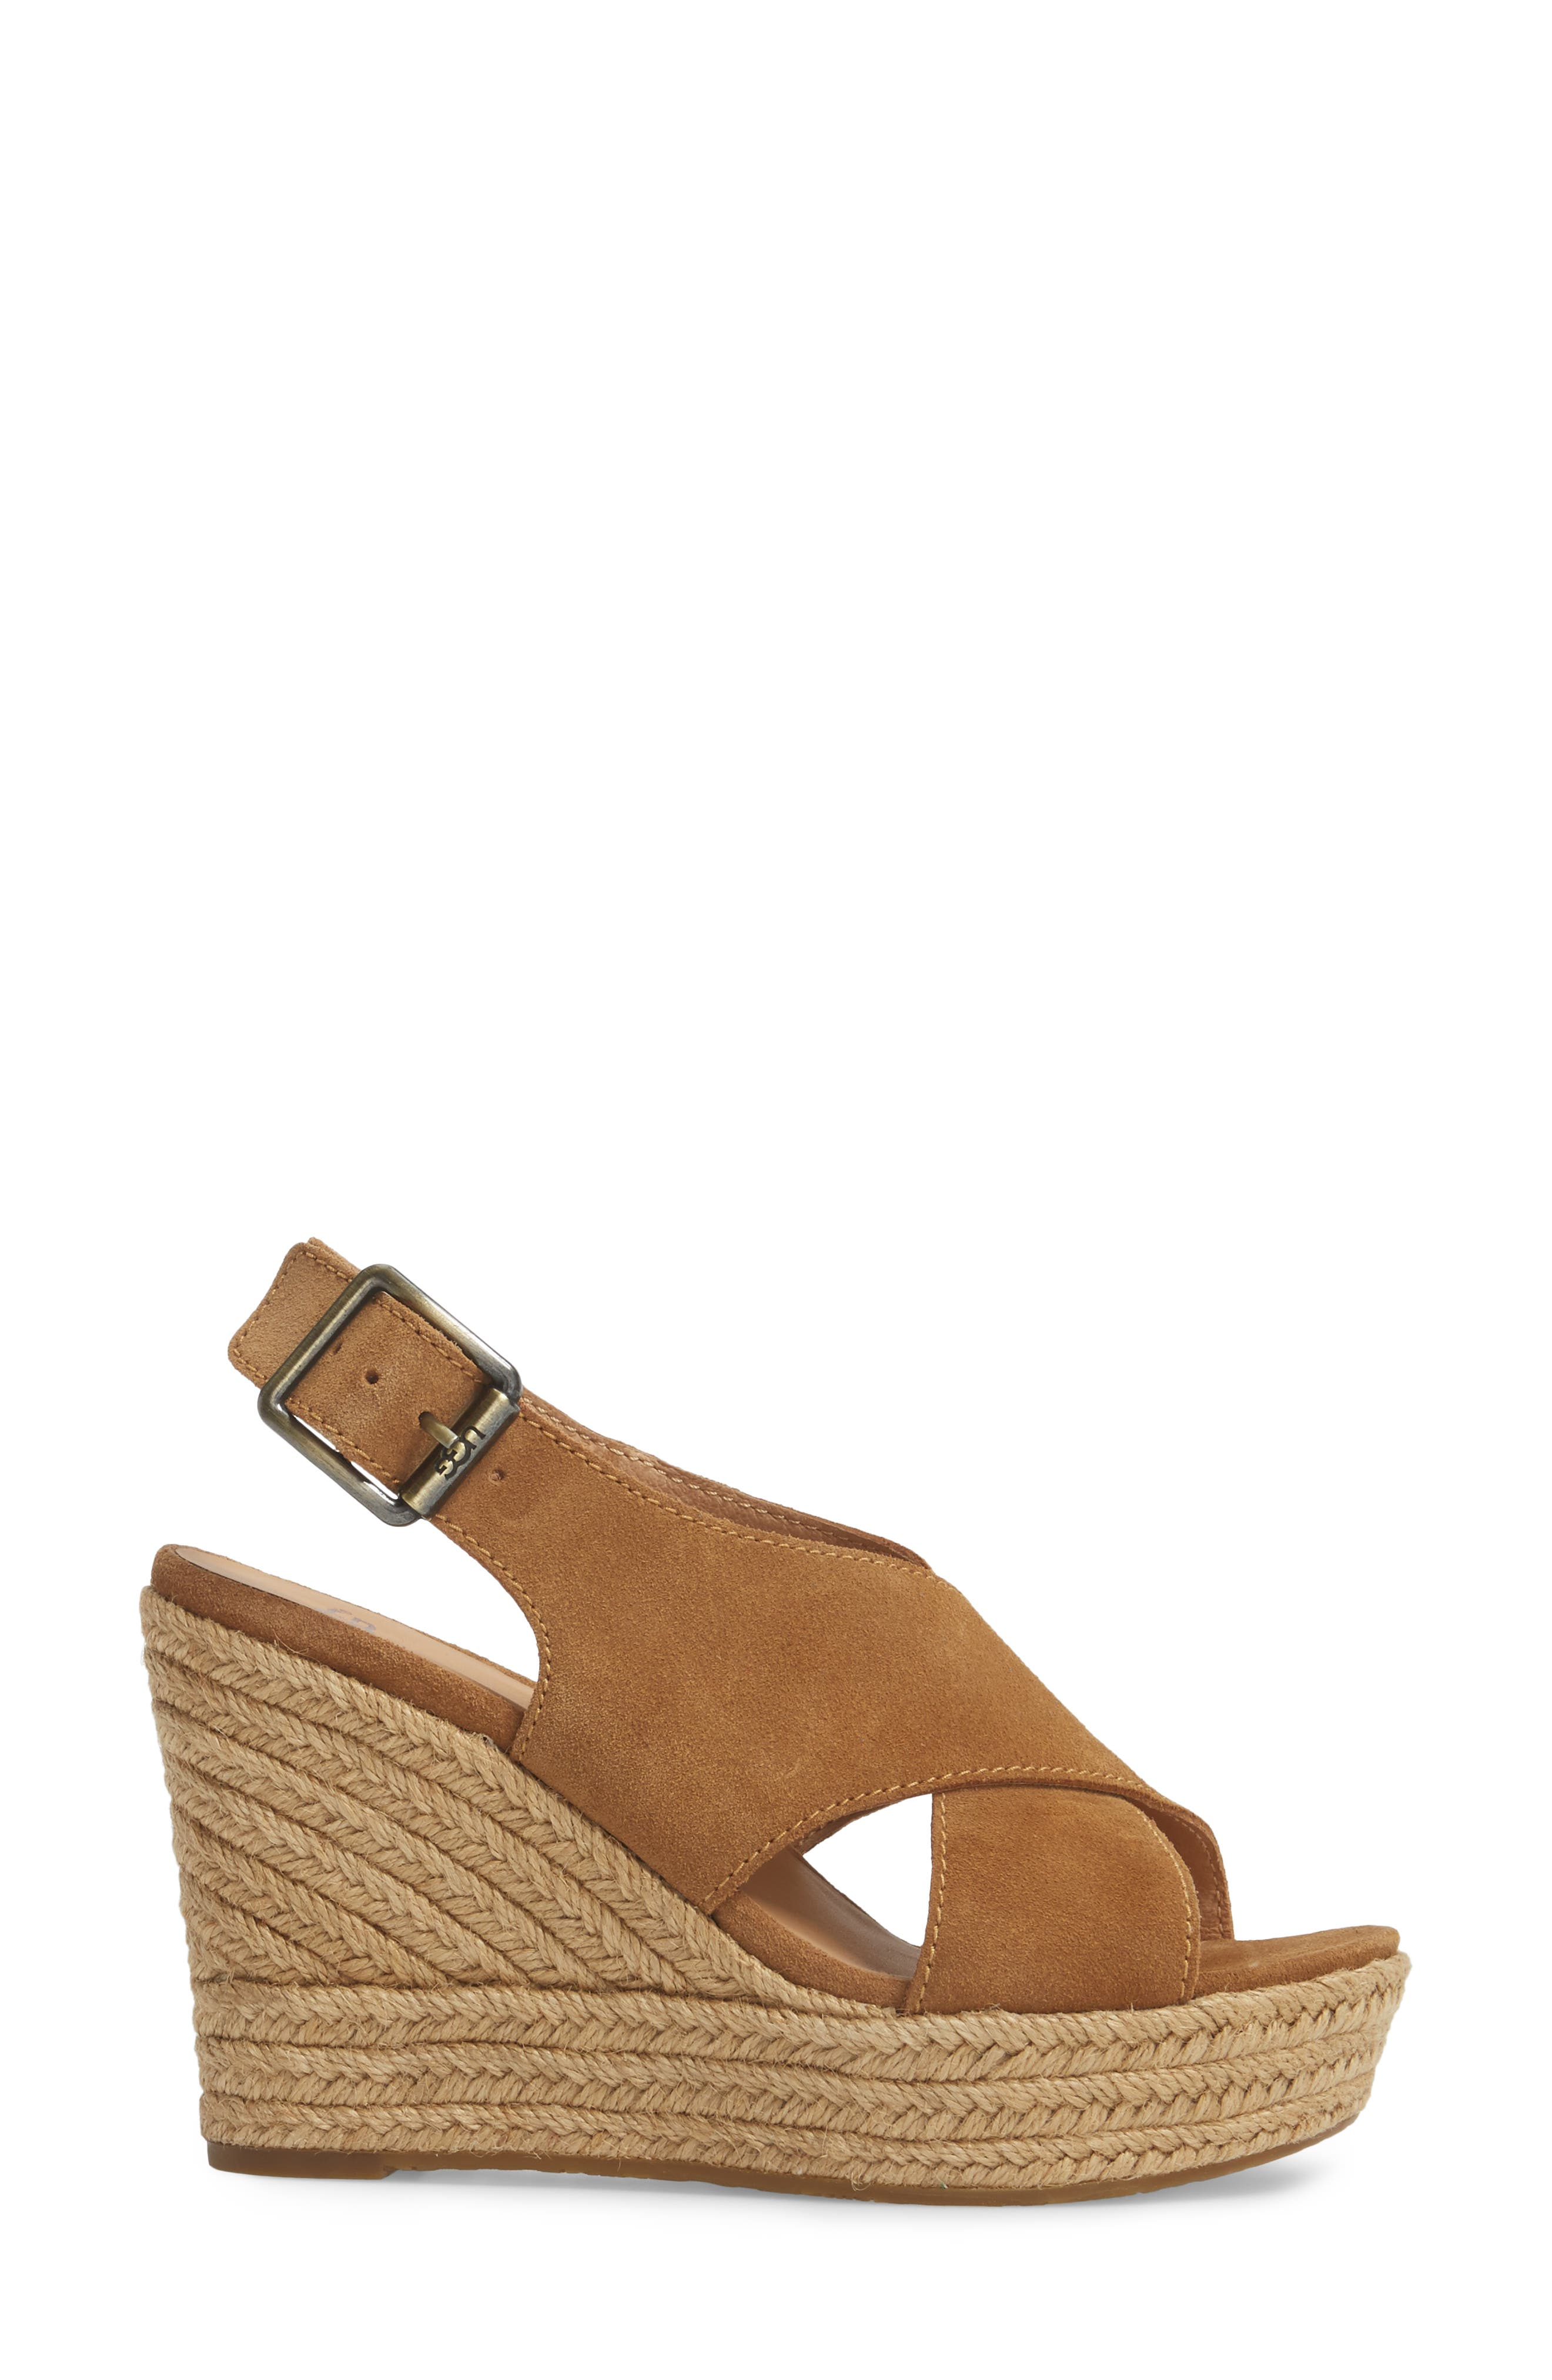 Harlow Platform Wedge Sandal,                             Alternate thumbnail 3, color,                             Chestnut Suede